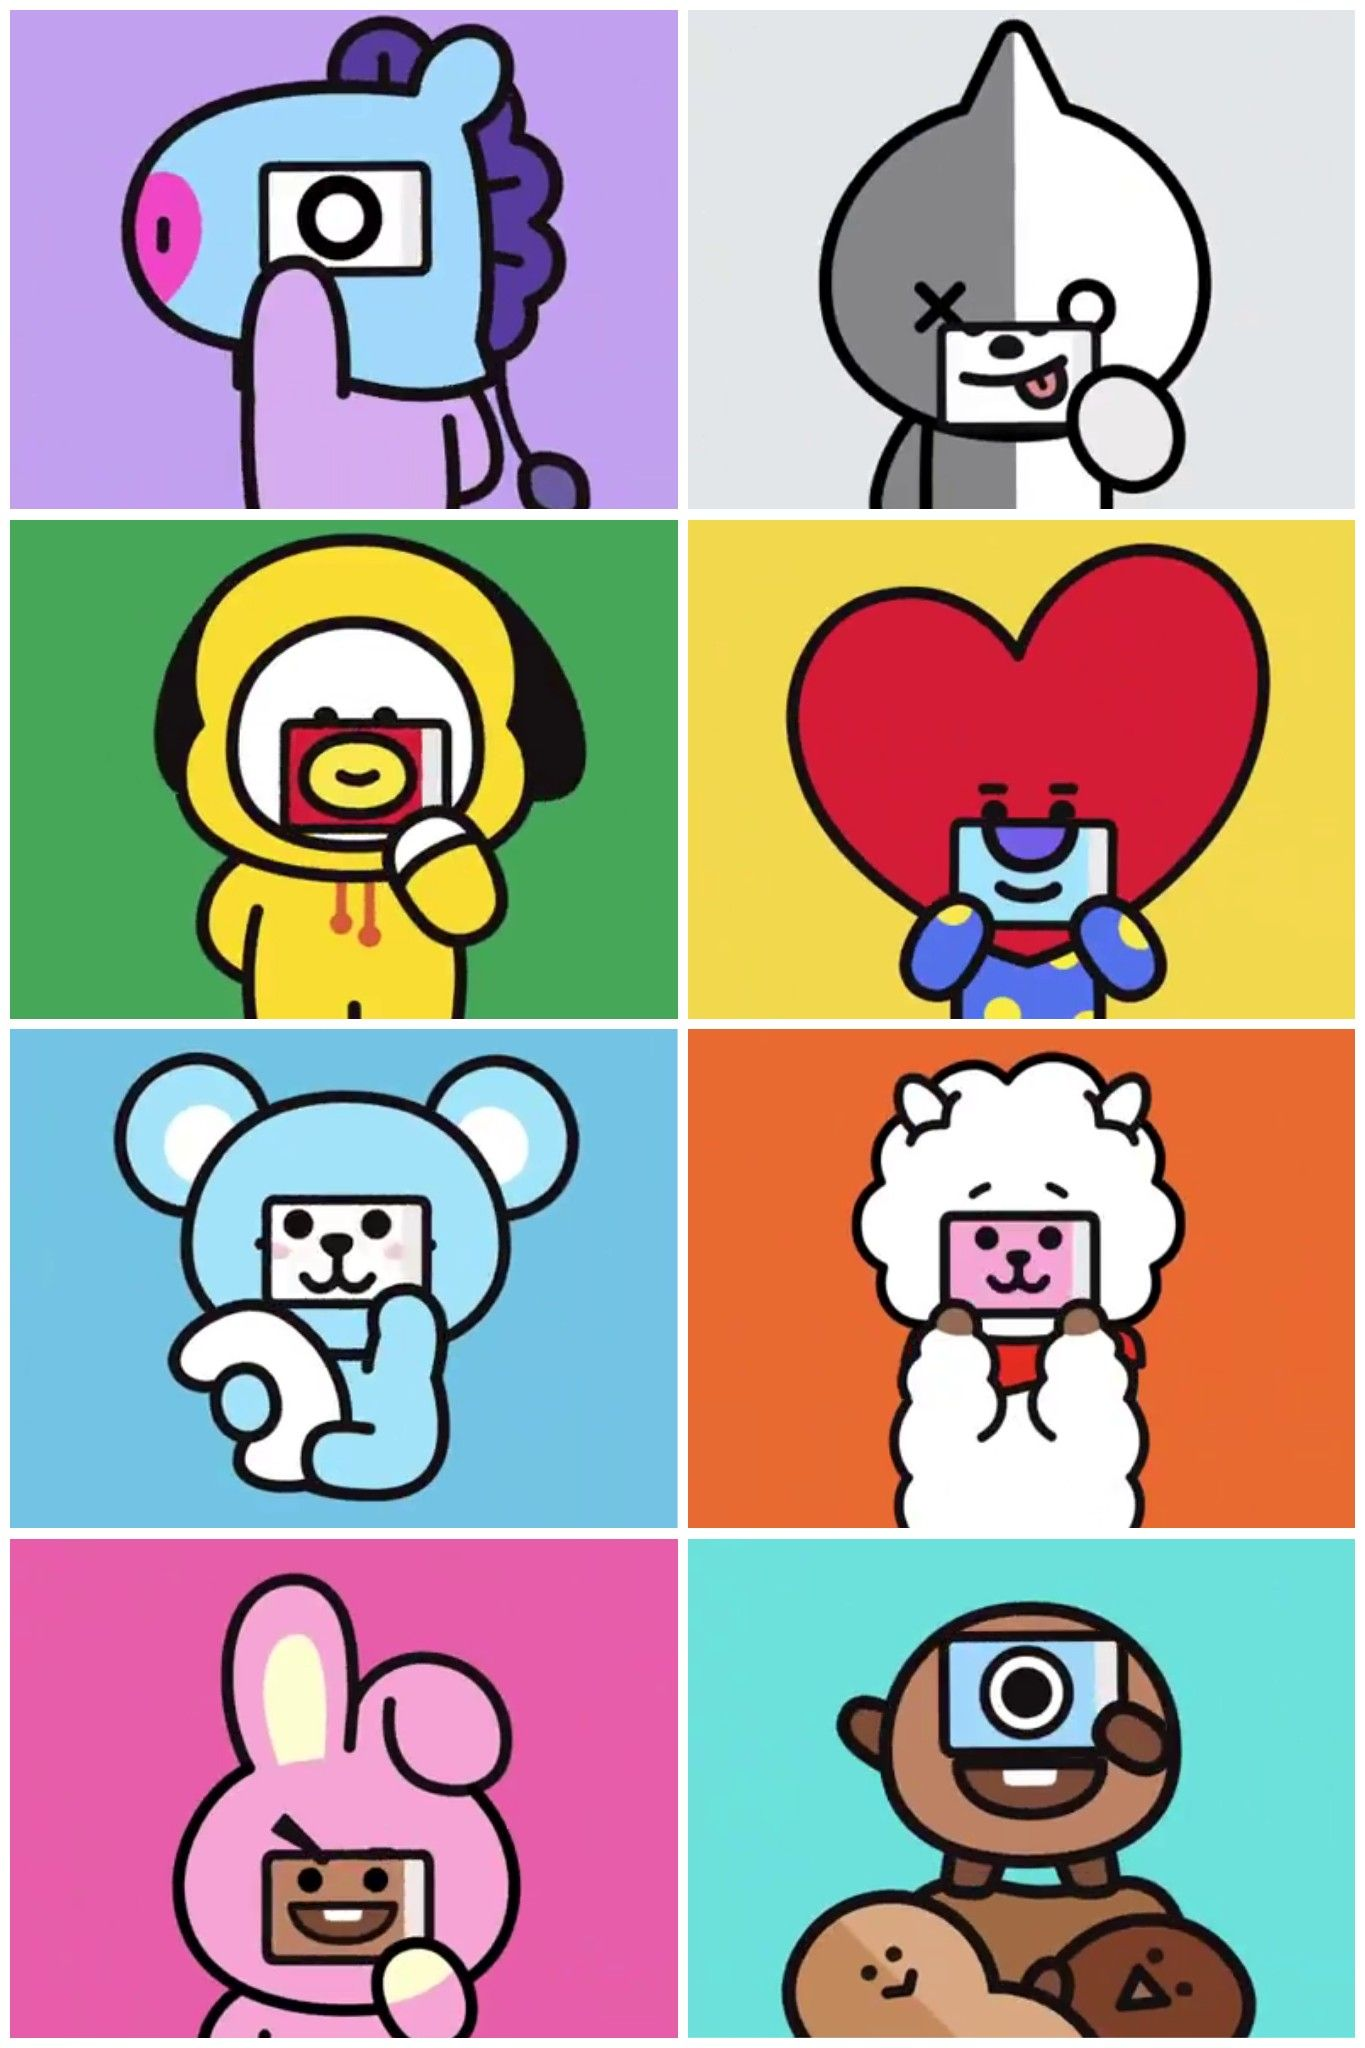 Wait, who's who? 😲 #BT21